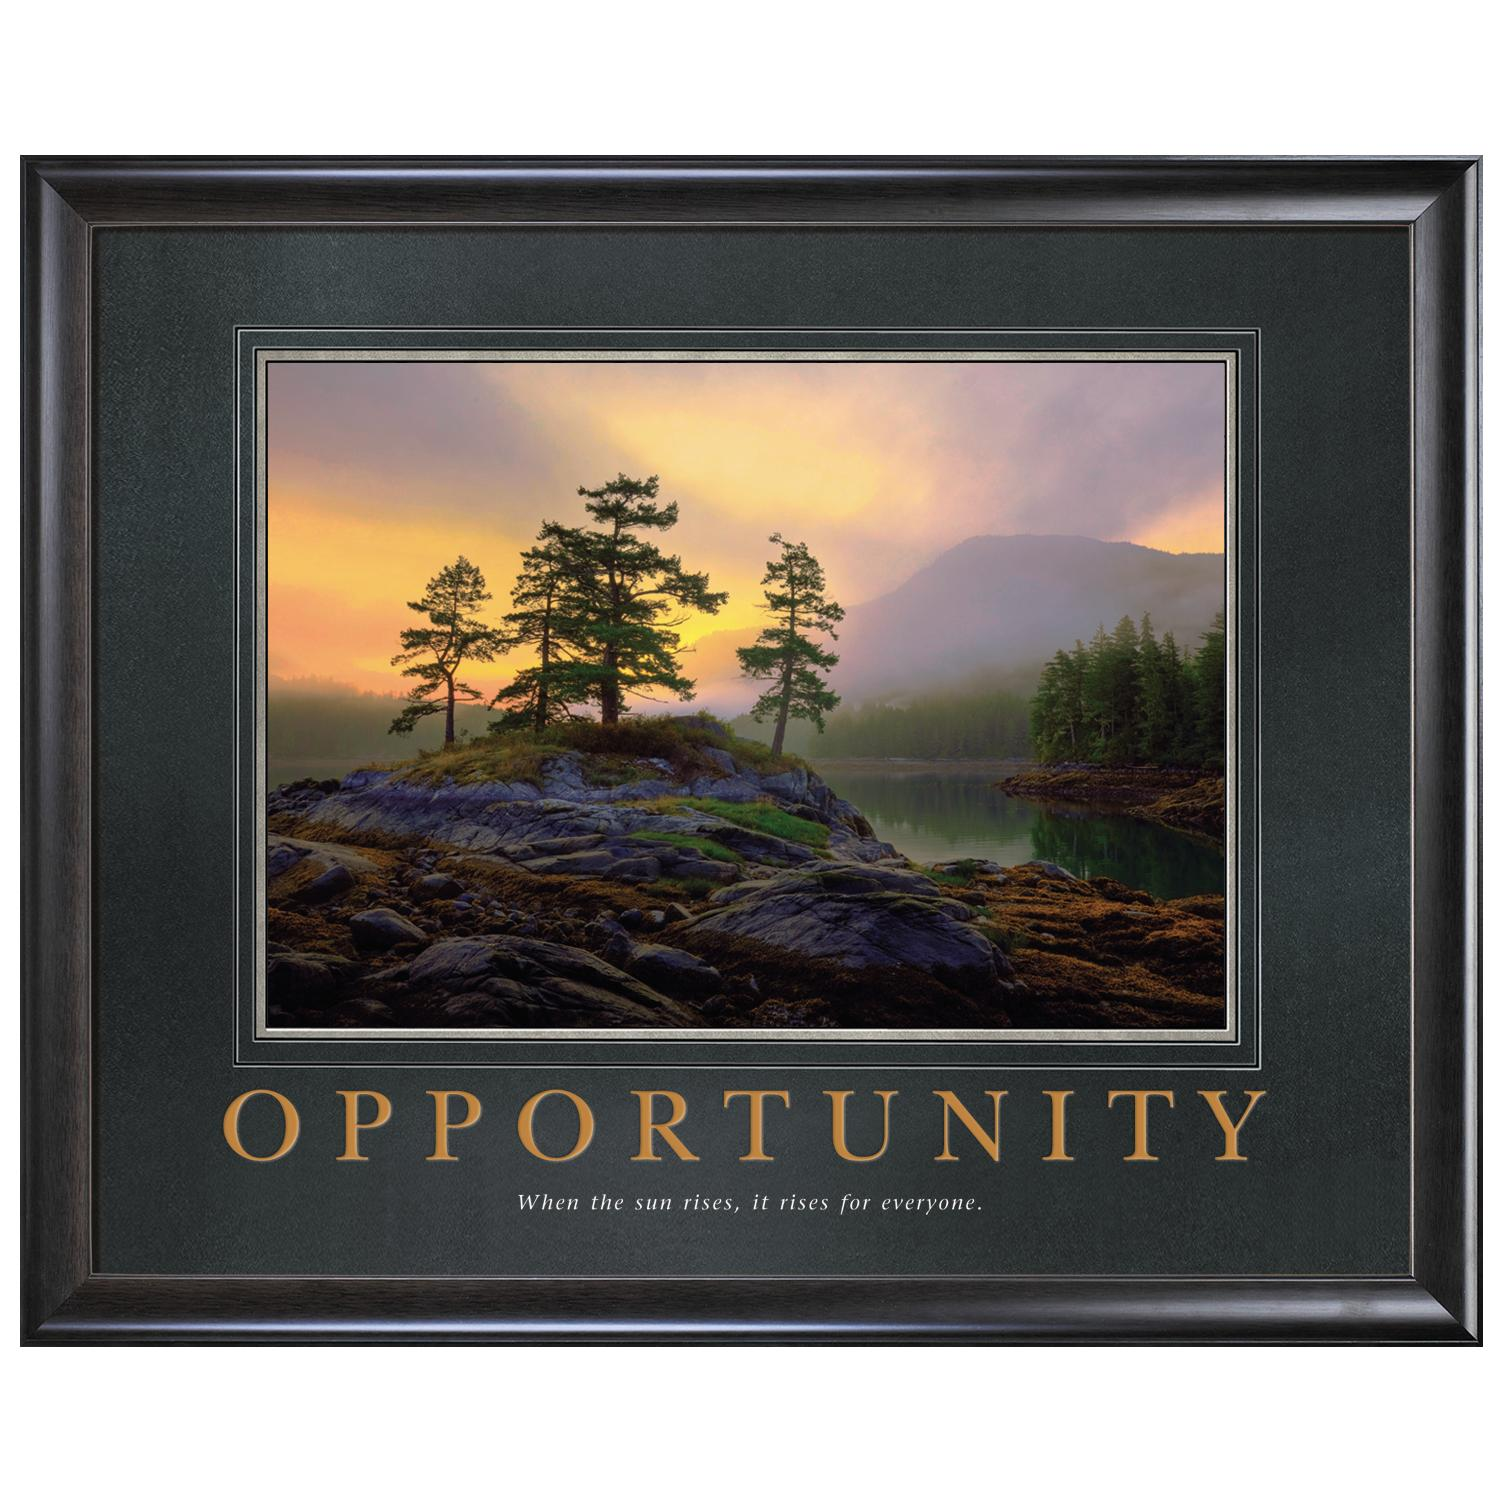 Opportunity Mountain Lake Motivational Poster